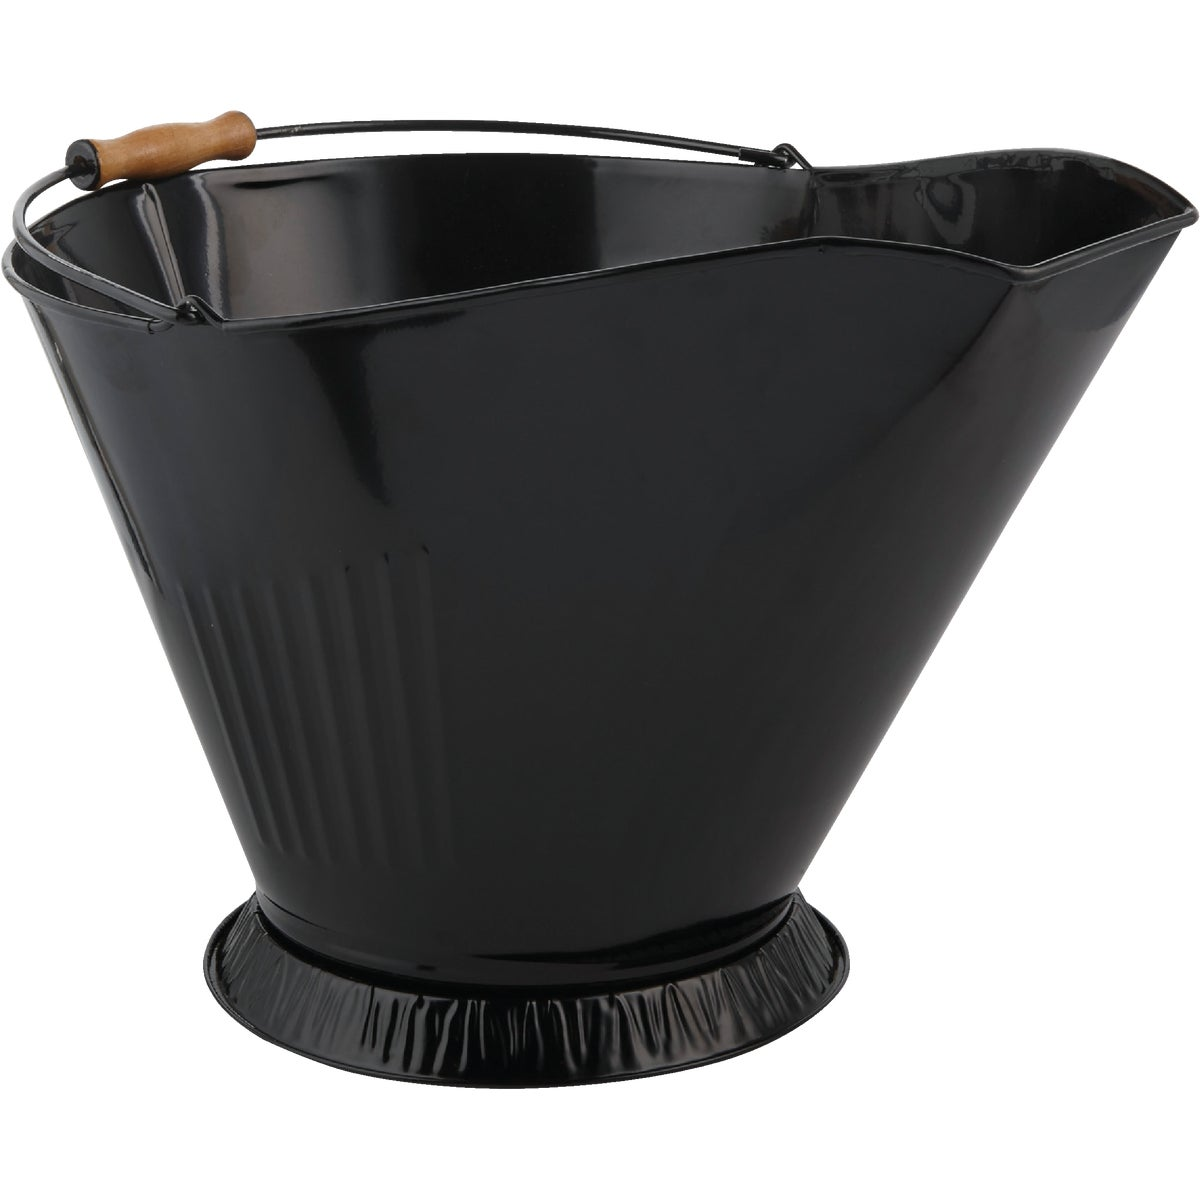 BLACK COAL HOD - LT0163 by Imperial Mfg Group